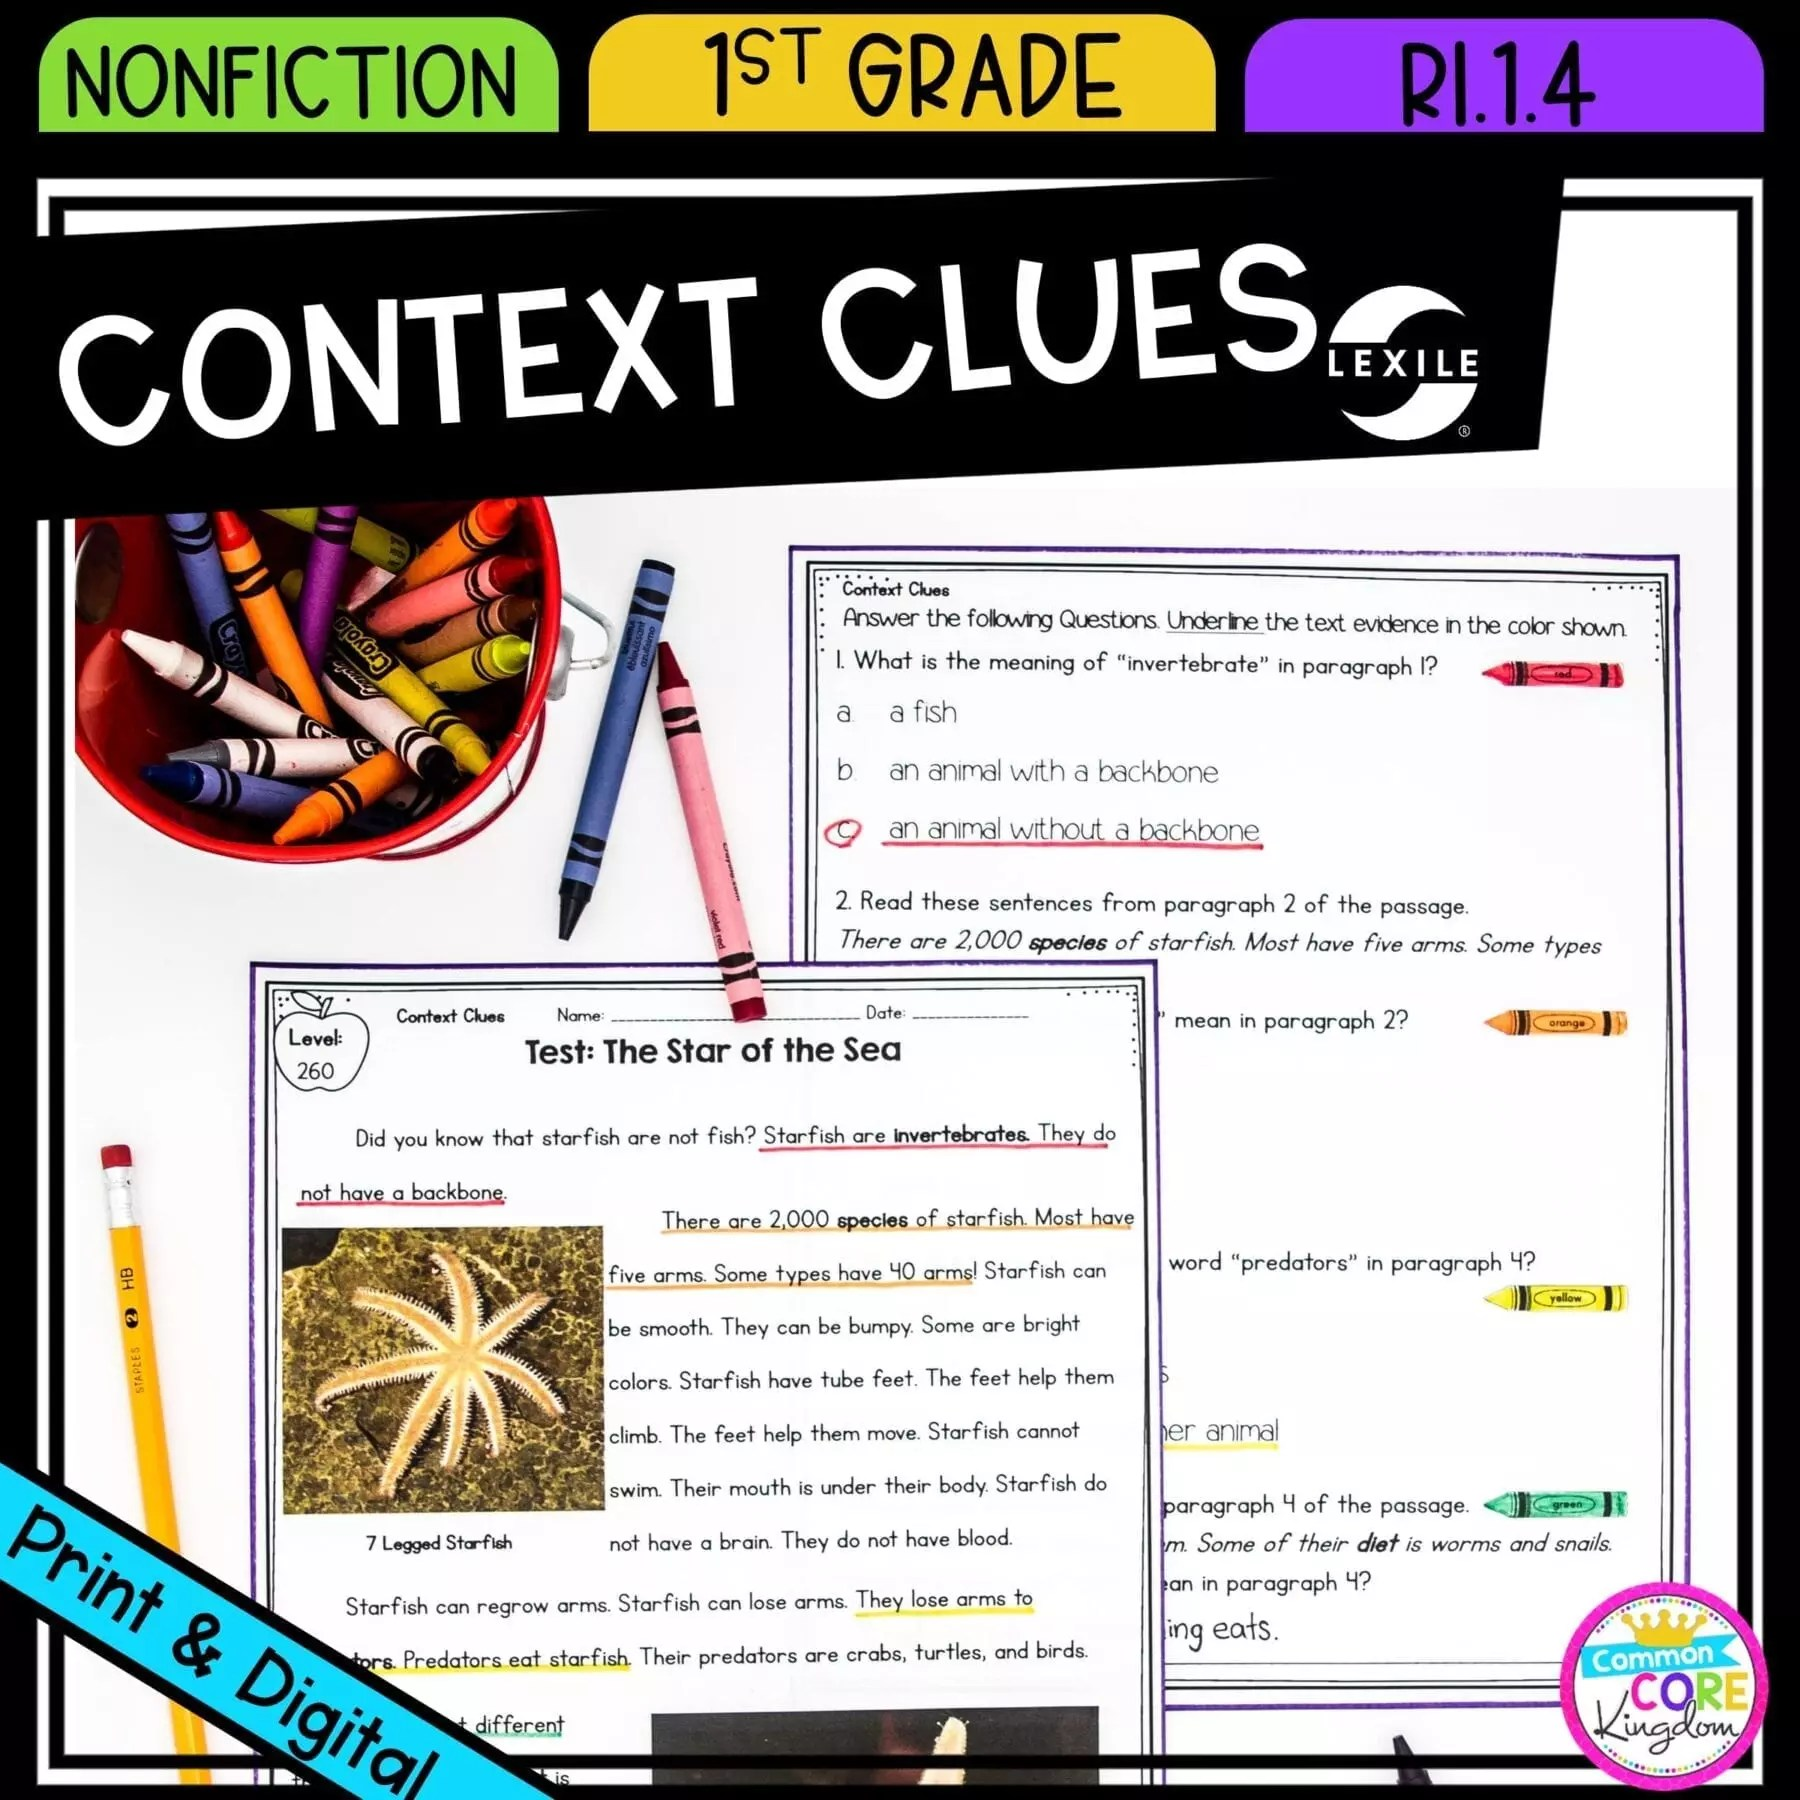 small resolution of Context Clues in Nonfiction - 1st Grade - RI.1.4 Printable \u0026 Digital Google  Slides Distance Learning   Common Core Kingdom